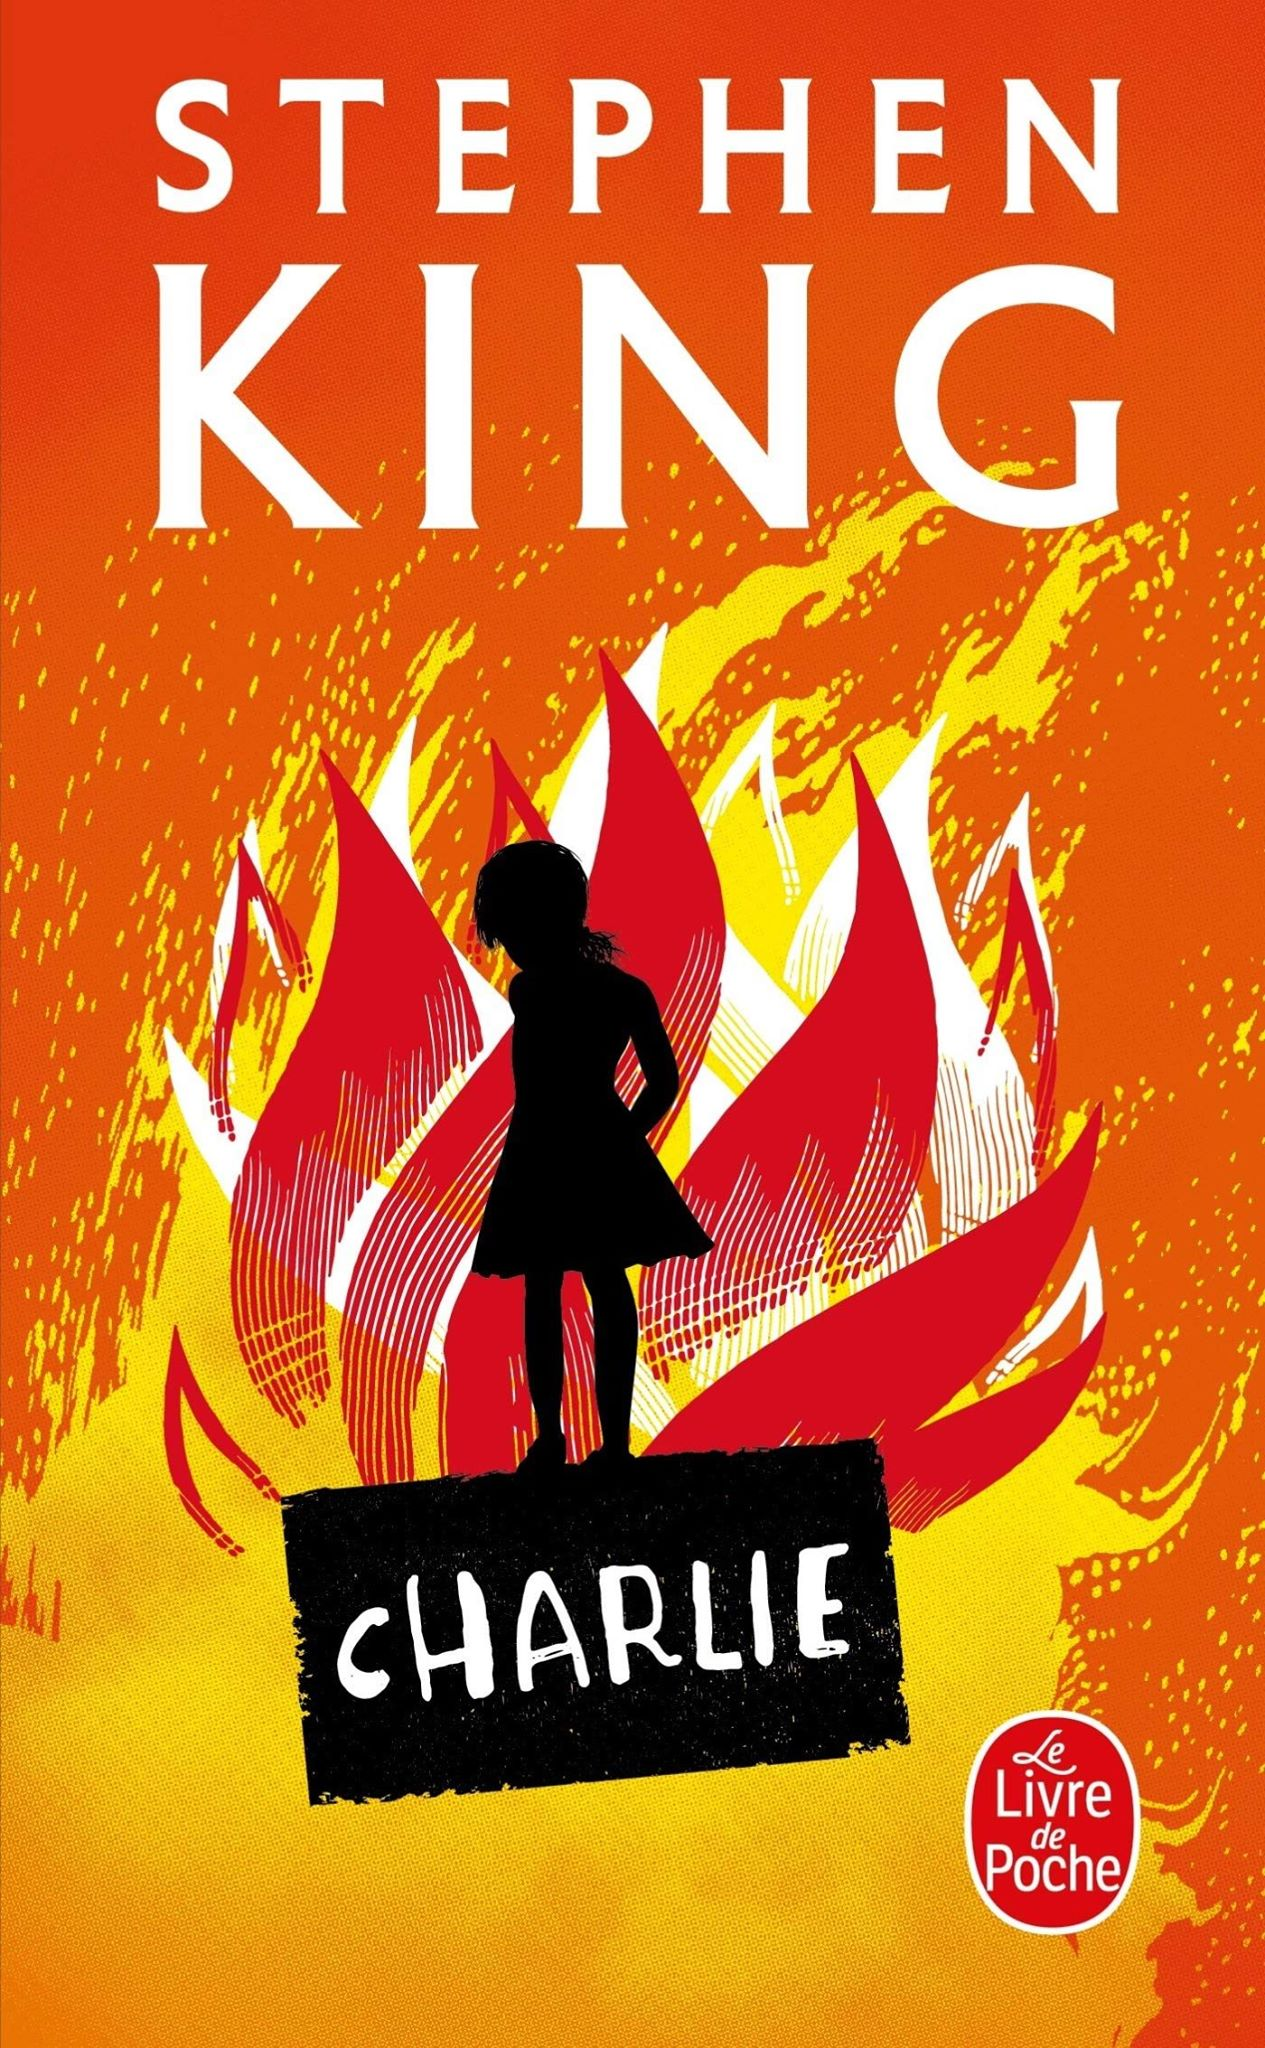 Stephenking Lelivredepoche Reedition 2020 Charlie